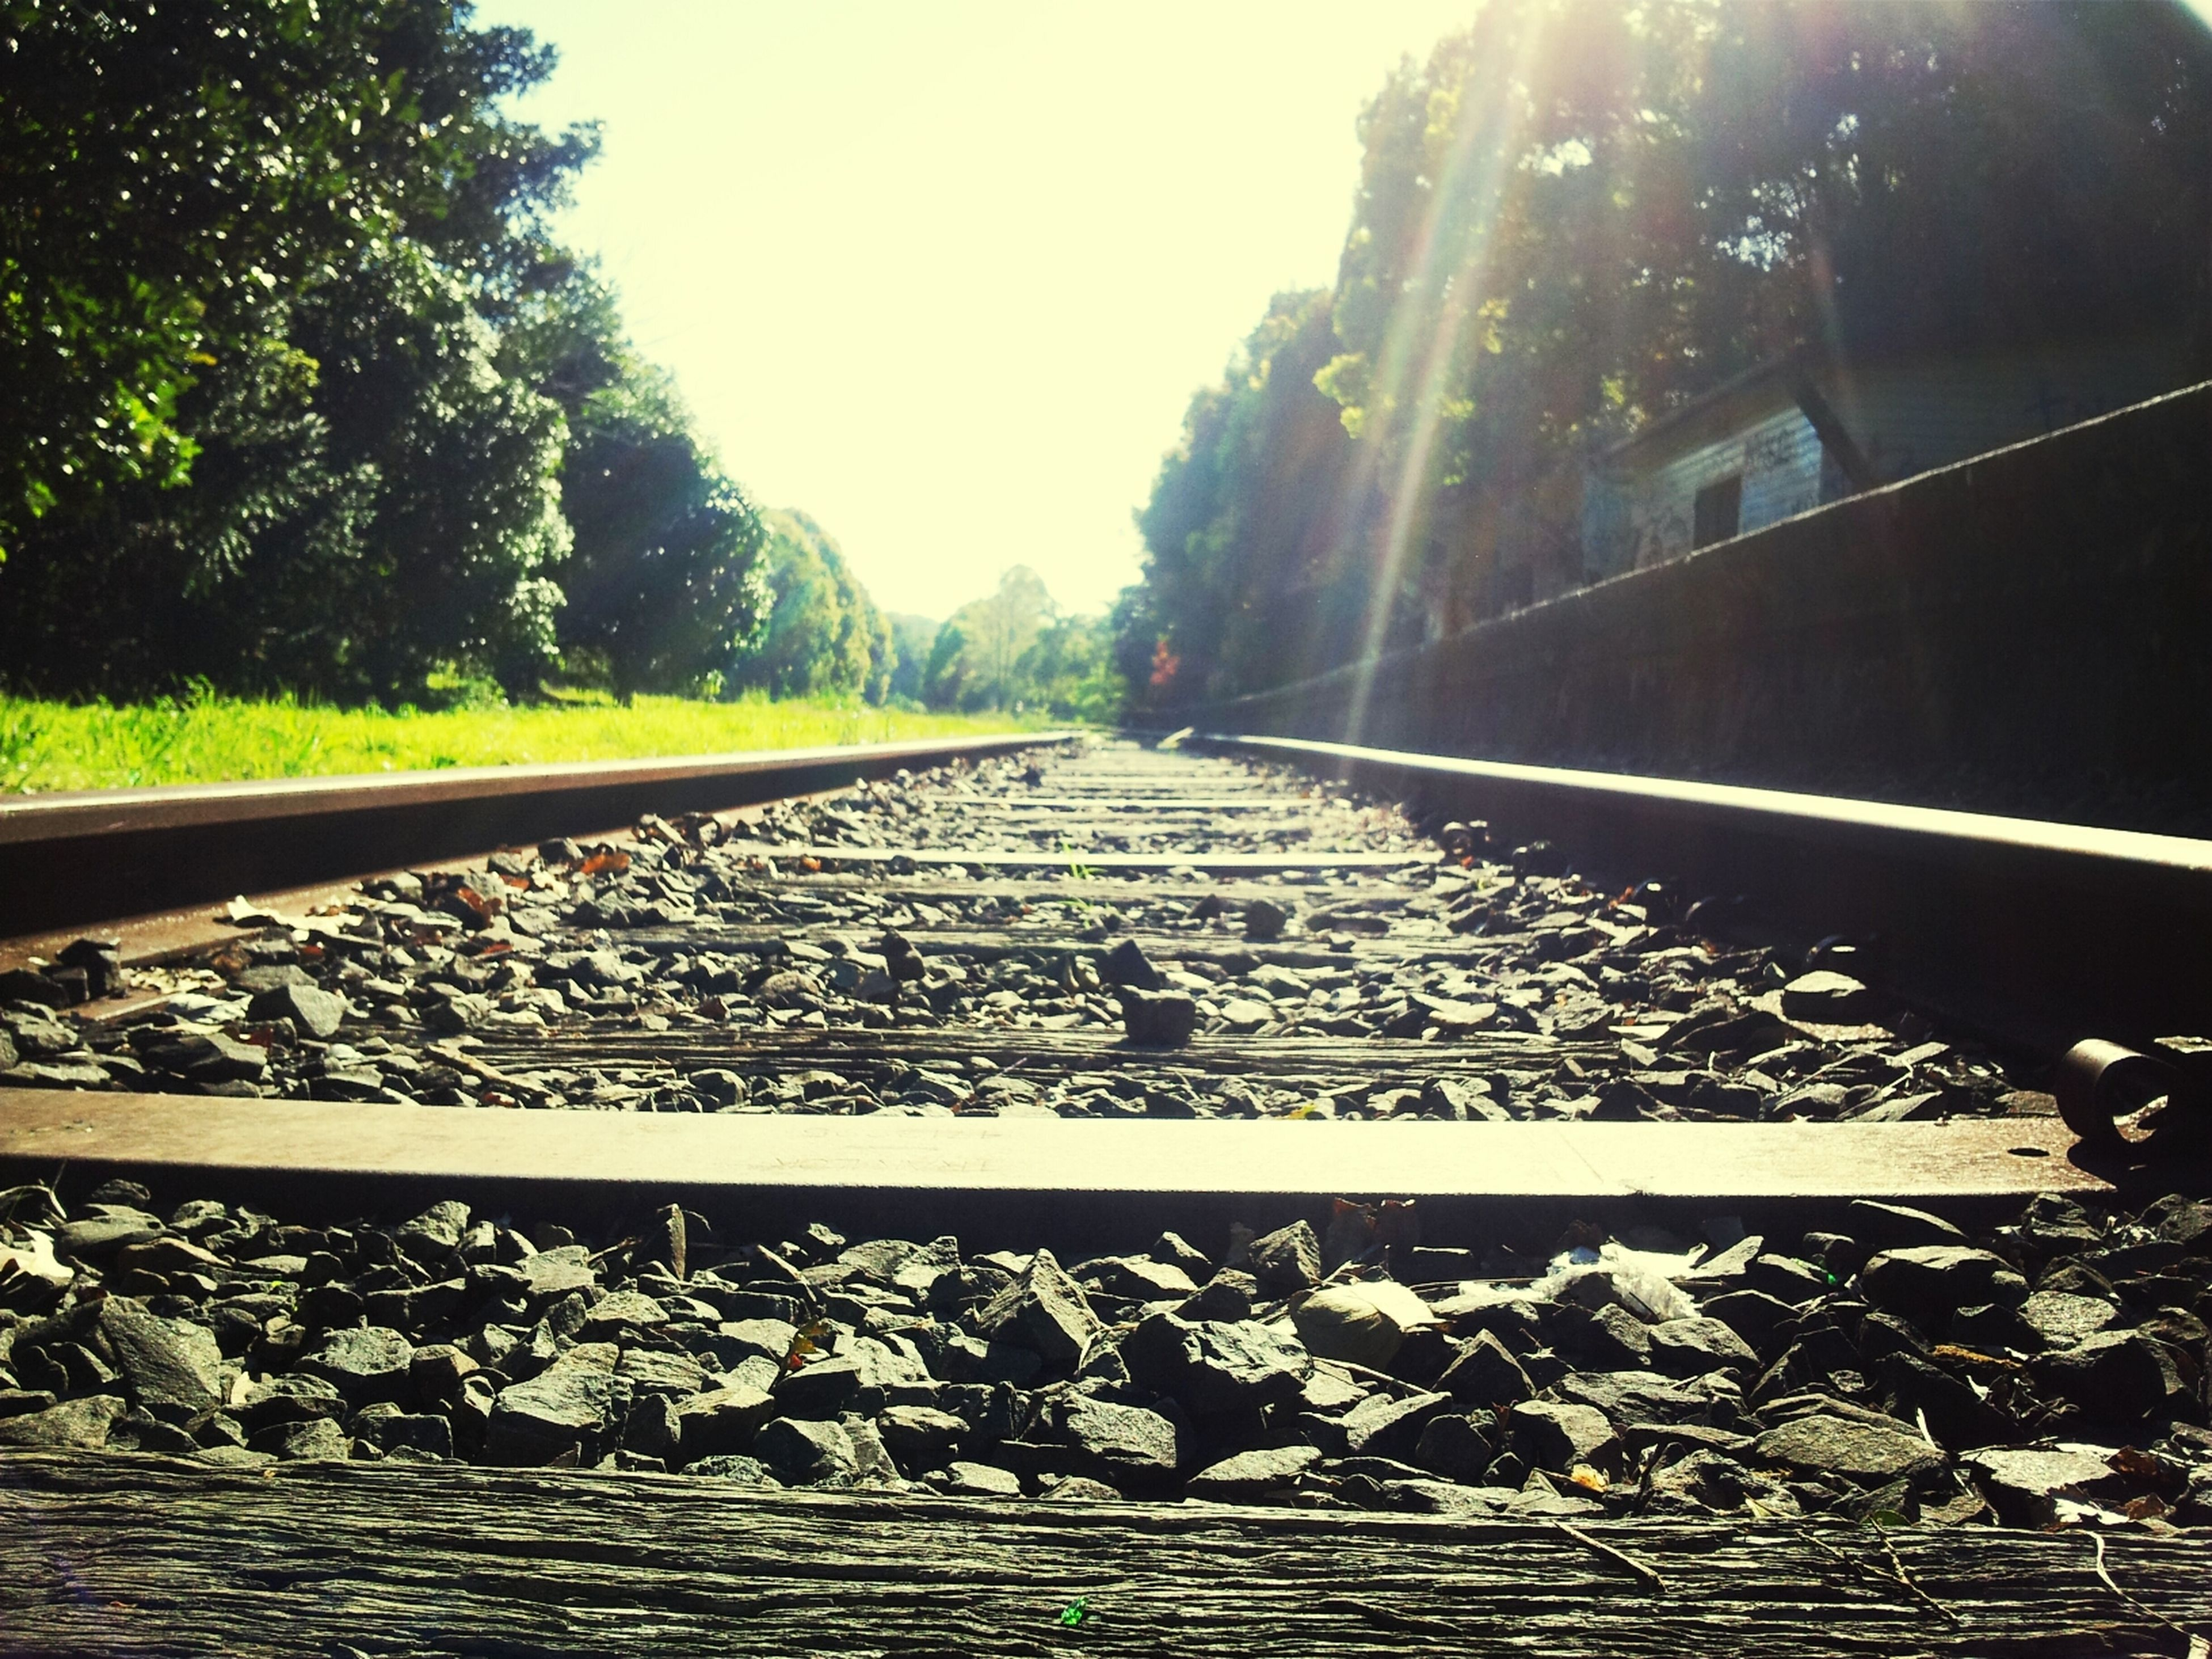 railroad track, the way forward, transportation, diminishing perspective, vanishing point, rail transportation, tree, clear sky, surface level, railway track, sunlight, sky, day, long, outdoors, railing, metal, straight, no people, built structure